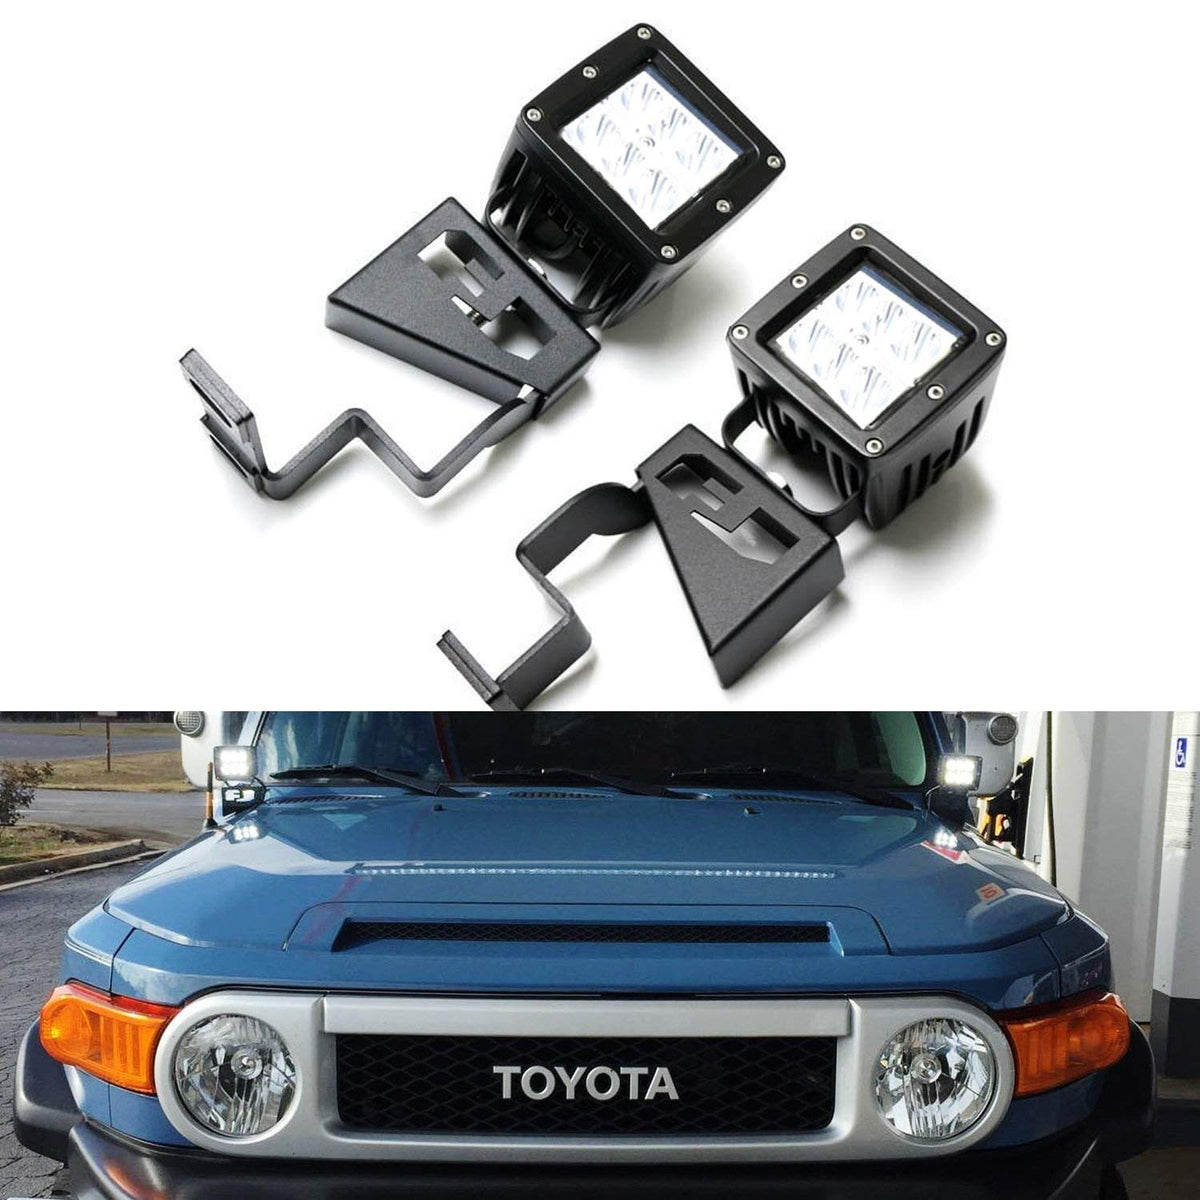 BEIJIAOFLY for Front Hood Cornor LED Work Lights A Pillar Light Mount Aluminium Alloy Mounting Brackets Fit Ford F150 Raptor 2009 2010 2011 2012 2013 2014 2015 F-150